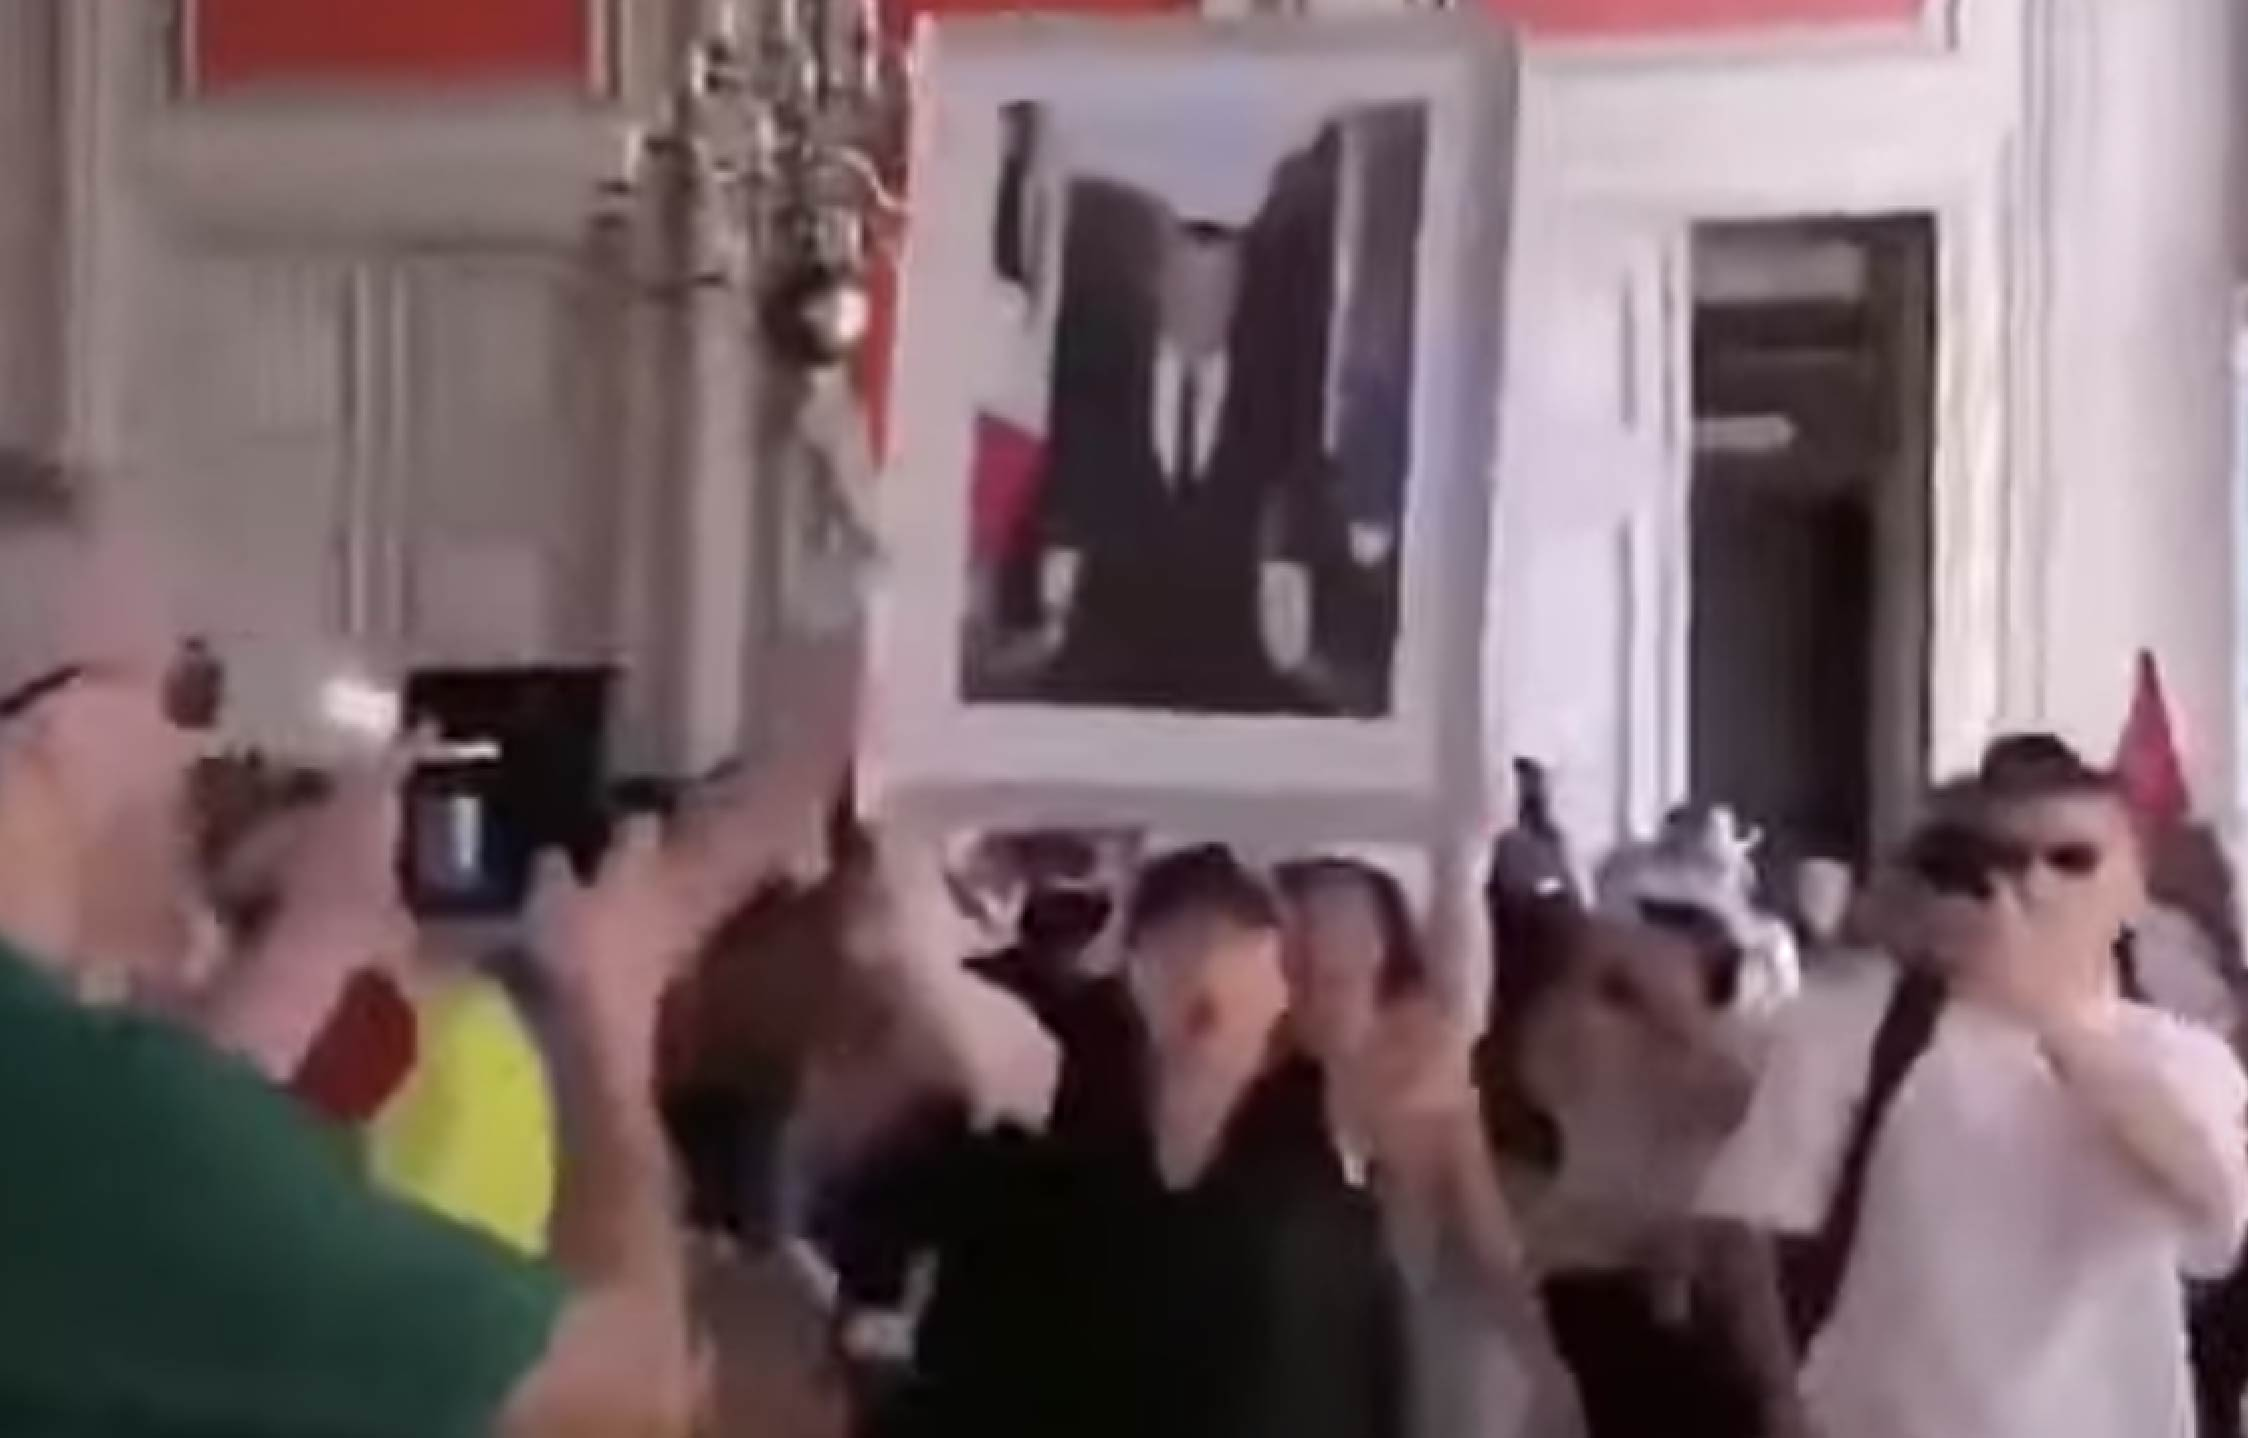 [VIDEO] French Citizens Storm The Town Hall, Rip Down Macron's Photo and Publically Destroy It